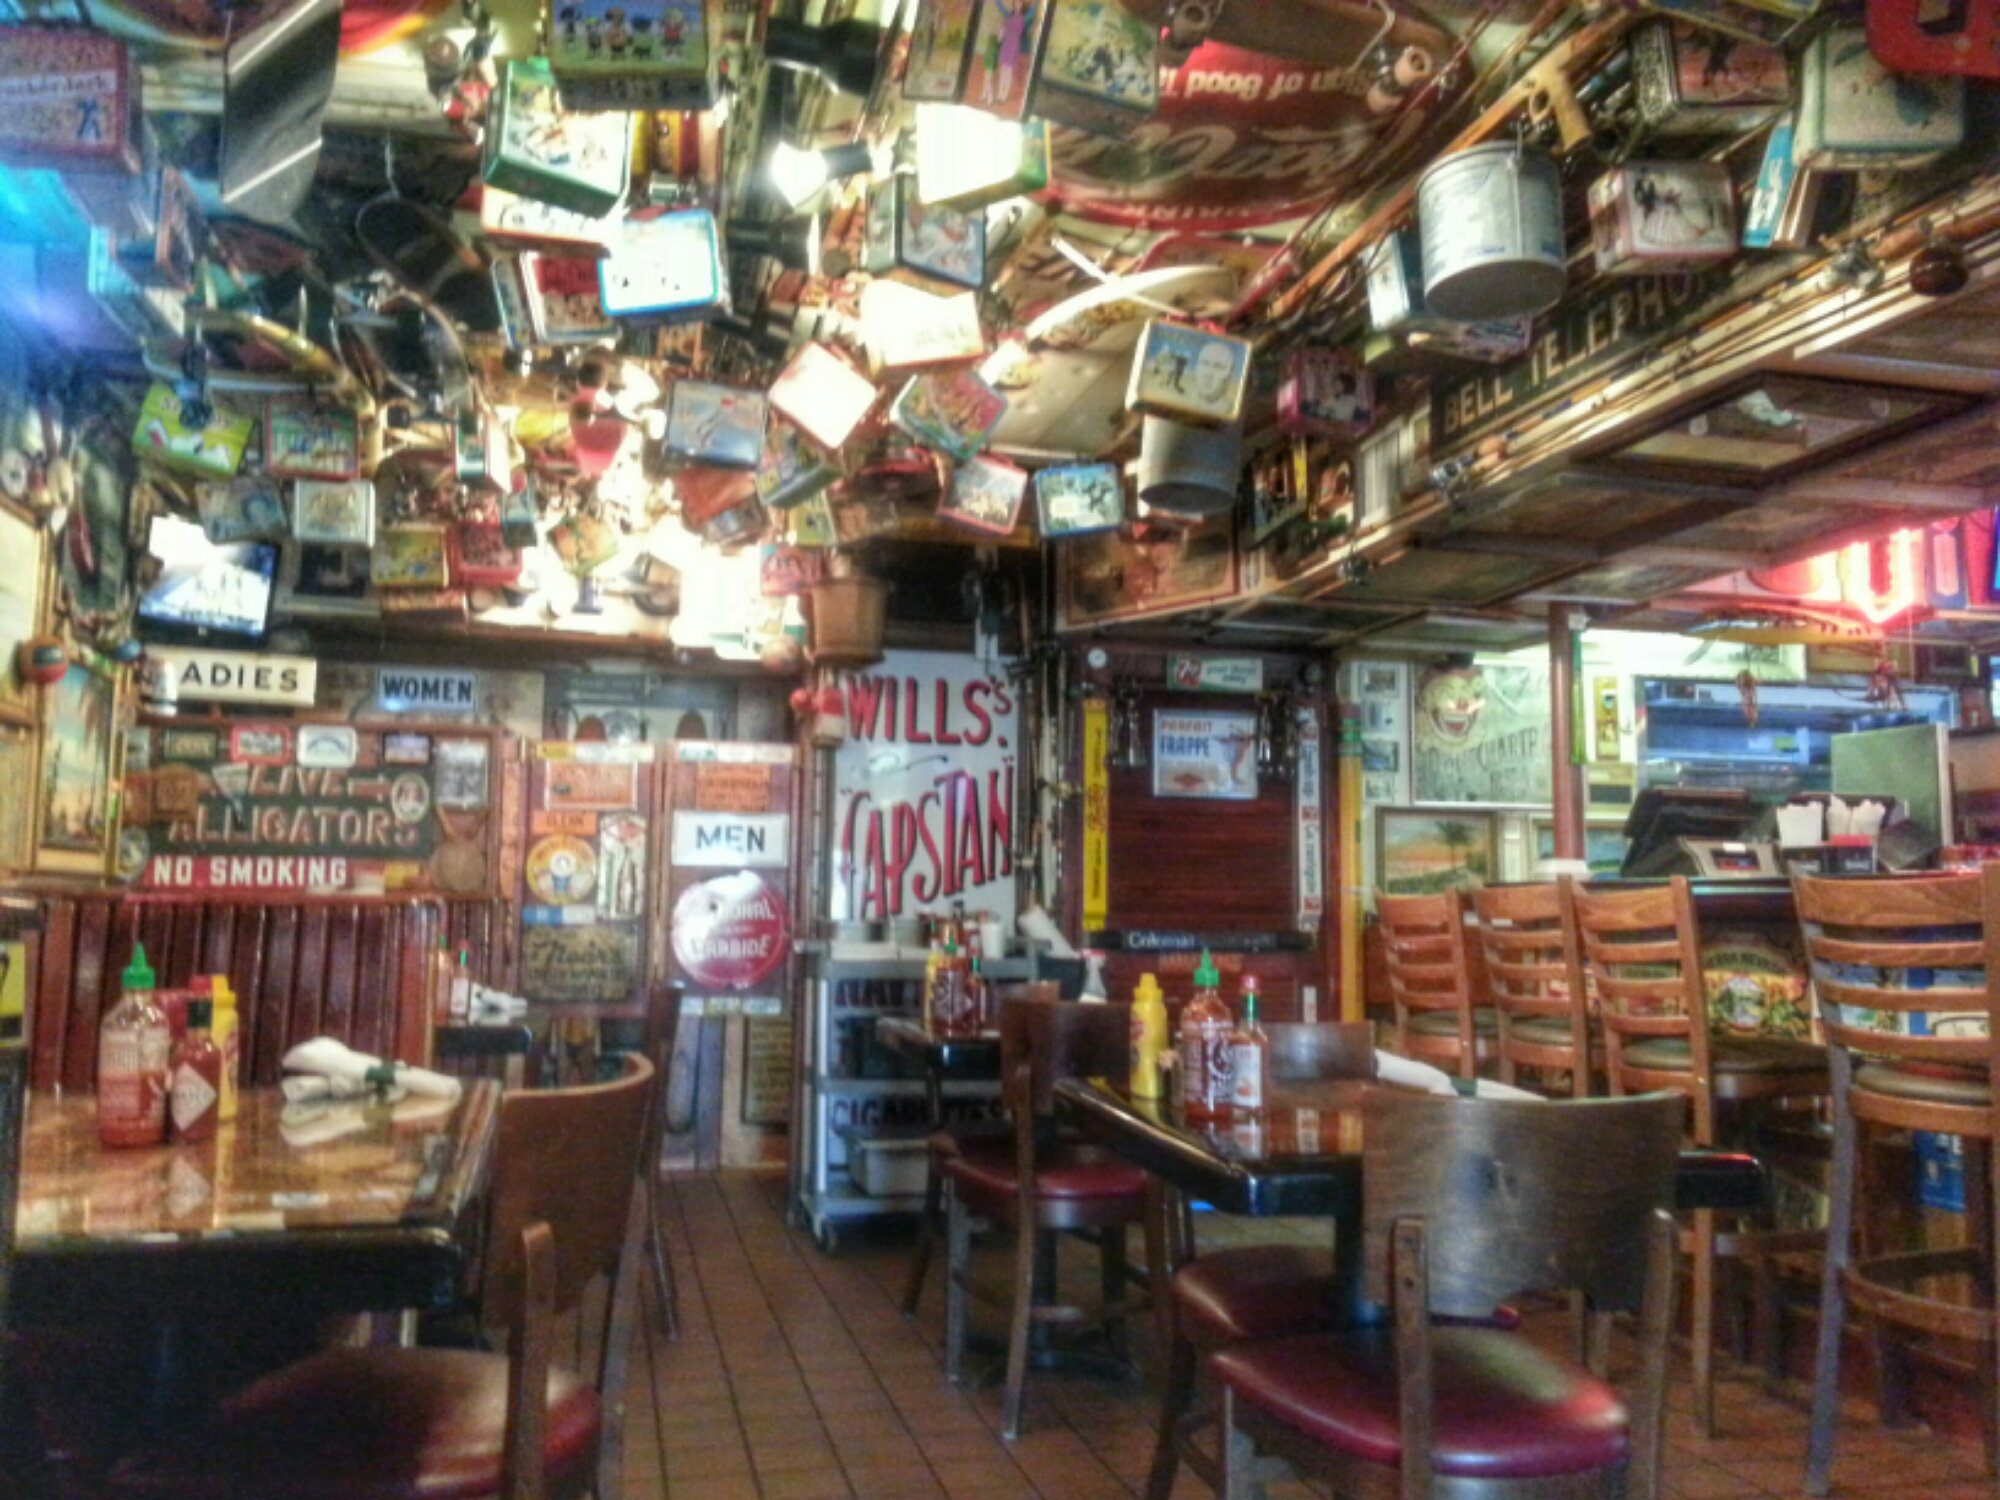 Dixie bar and grill